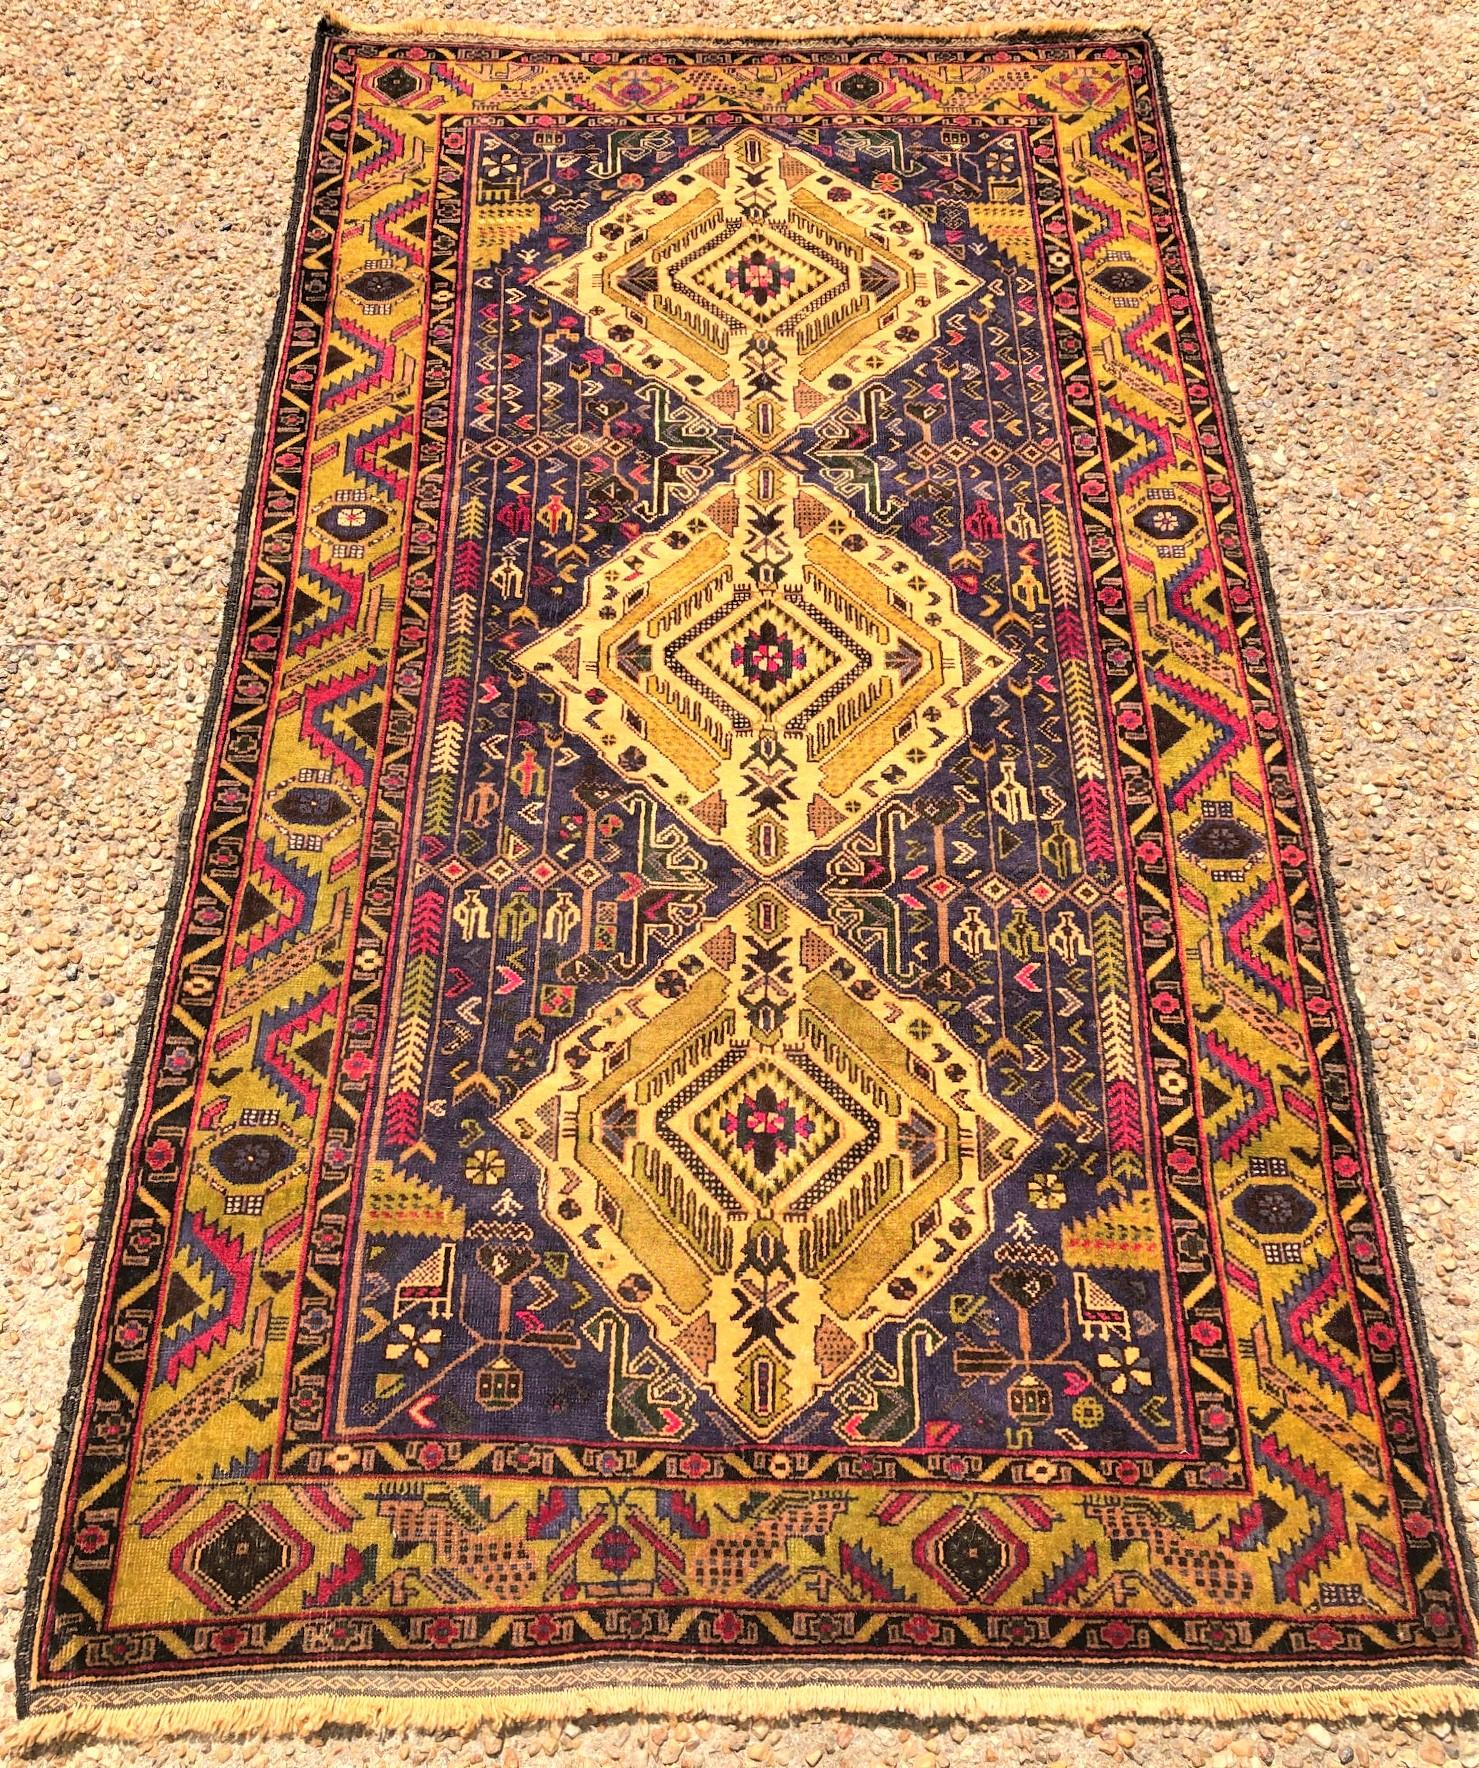 BALOUCH HAND KNOTTED RUG - 3.6 x 6.7